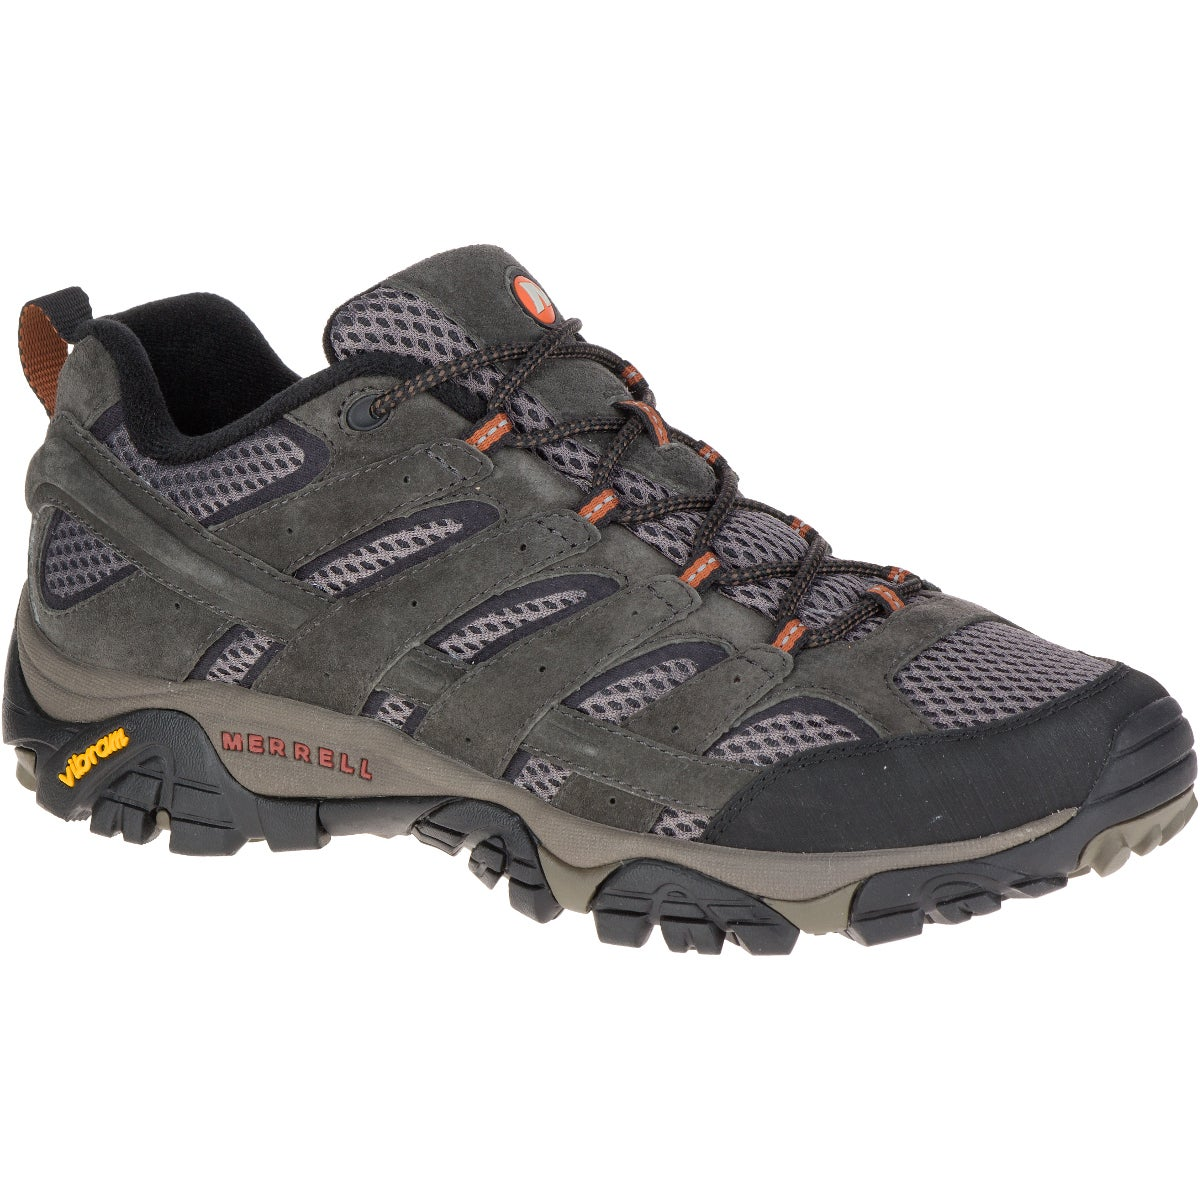 product image of a hiking shoe from merrell on a white background